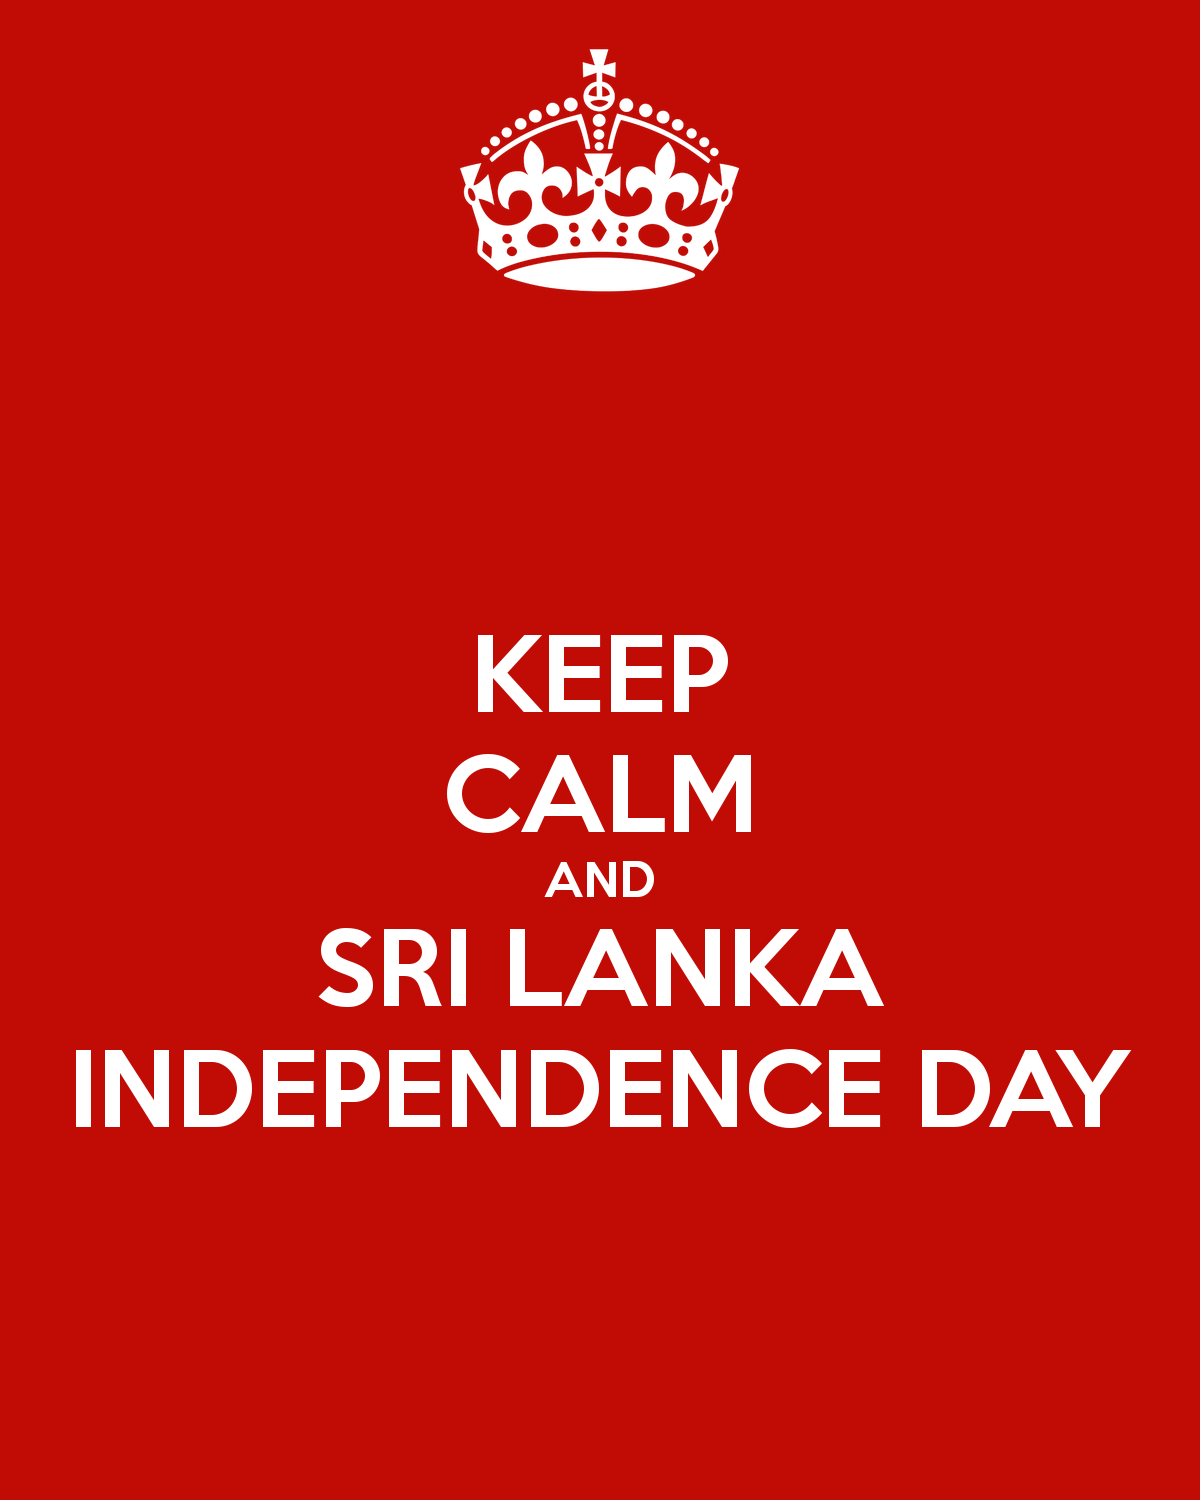 essay about independence day in sri lanka